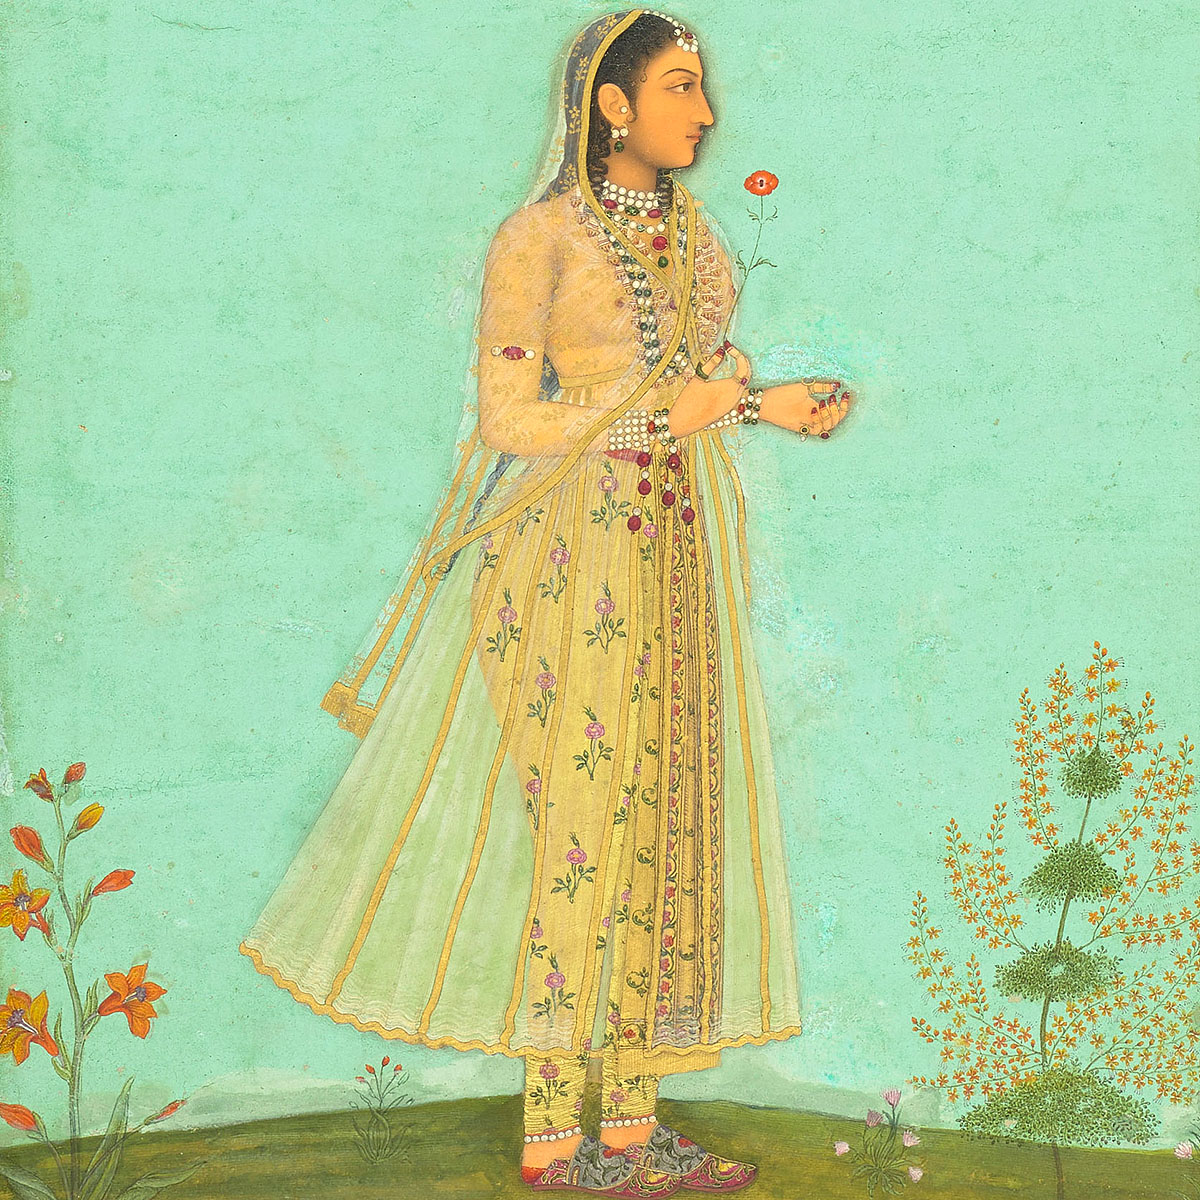 A Mughal lady (possibly Farzana Begum), c.1650. Royal Collection Trust/ c Her Majesty Queen Elizabeth II 2020